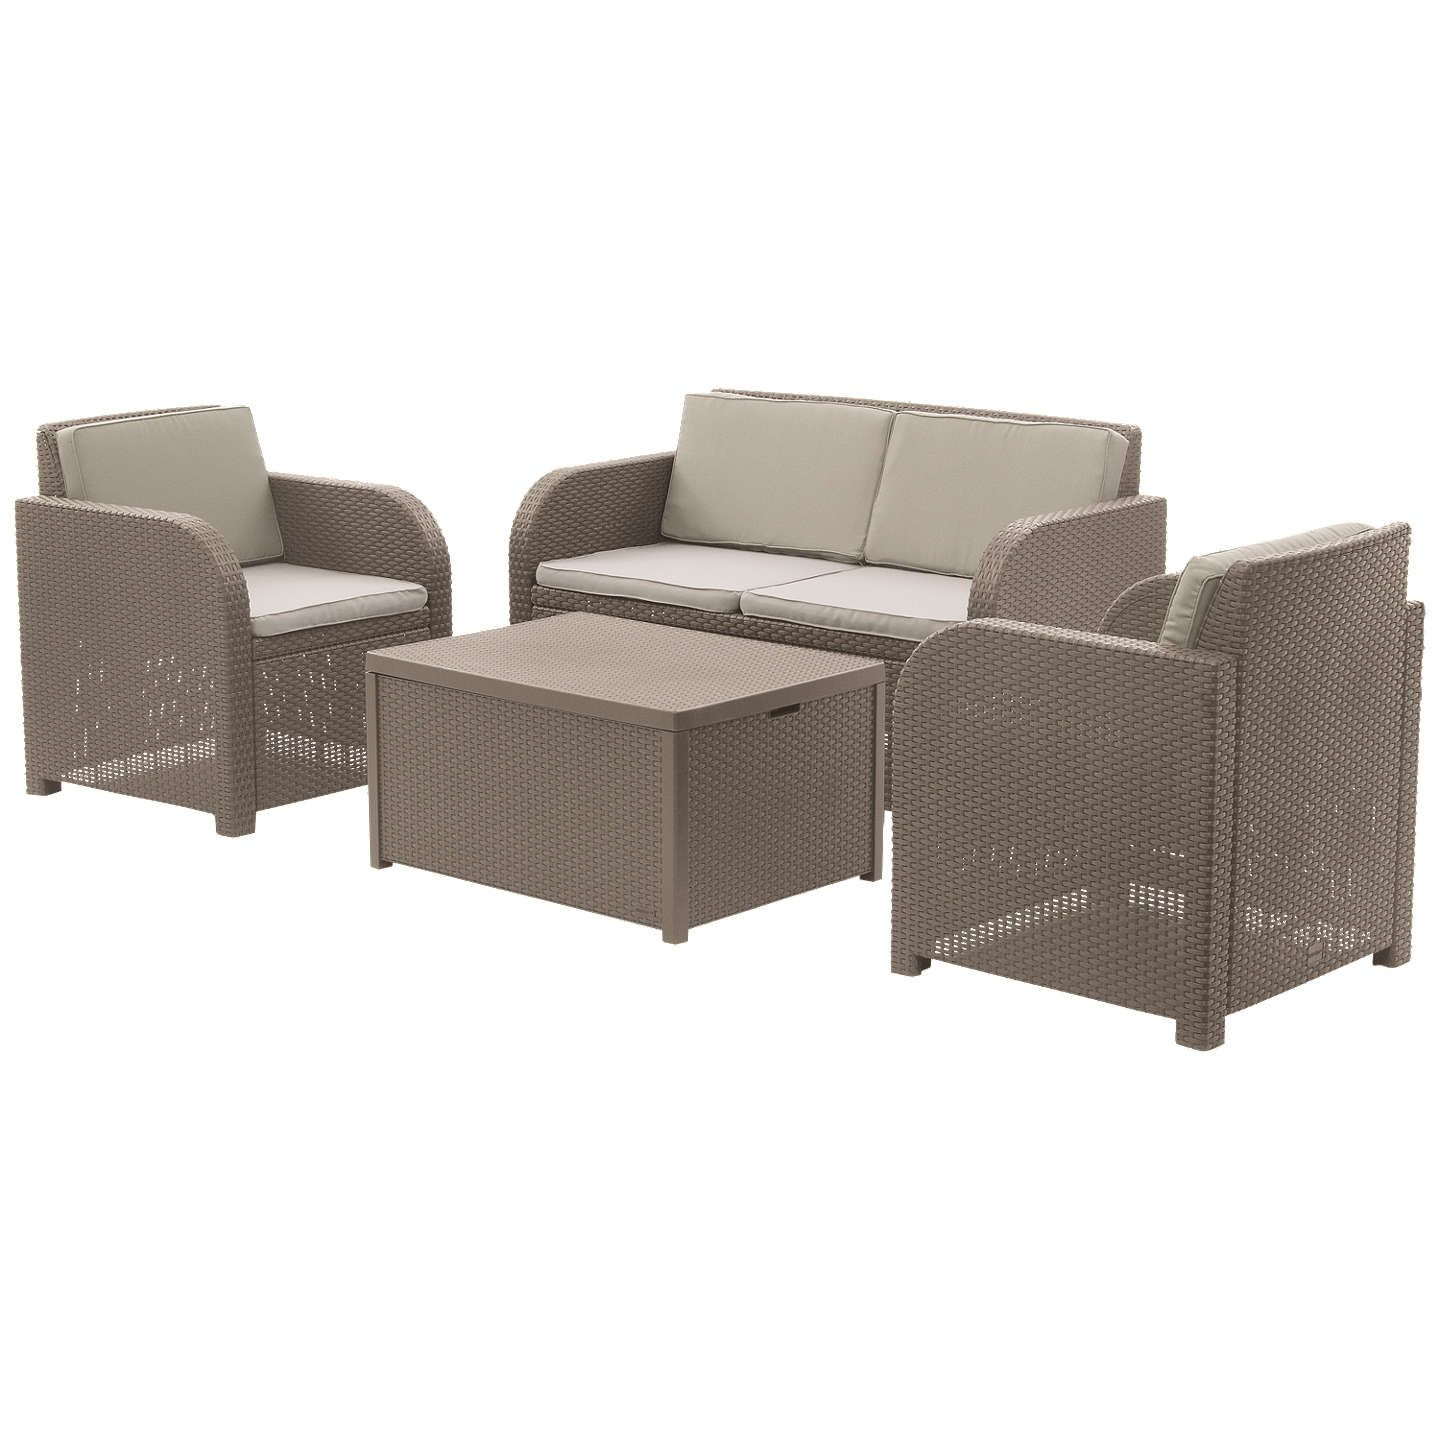 Oasis 4 Seater Garden Lounging Table And Chairs Set: John Lewis & Partners Oasis 4 Seater Garden Lounging Set